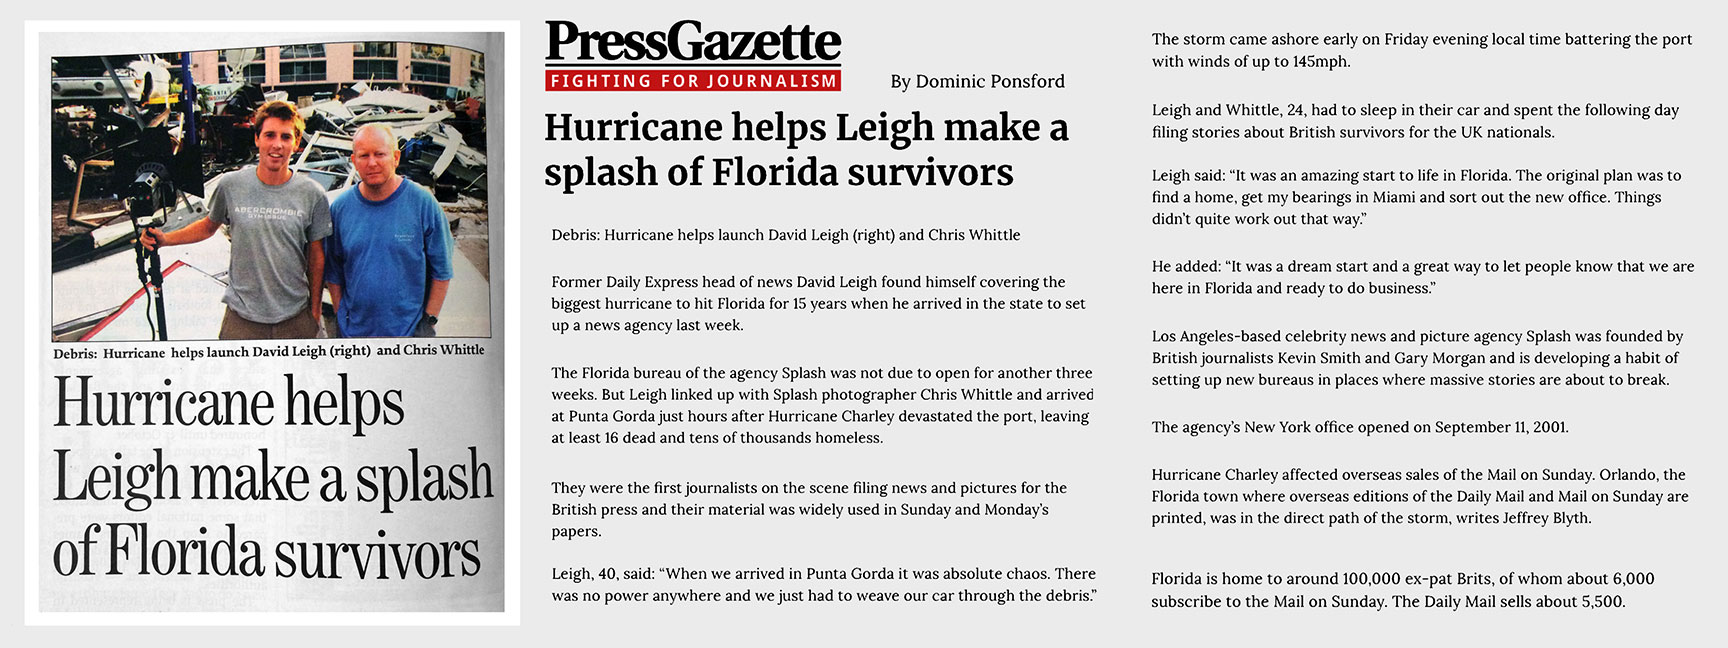 Myself and Dave Leigh covered Hurricane Charley in Florida, 2004. We were asked by the Splash bosses to pose for a picture so the Press Gazette could do a story on the new Splash Miami Bureau opening.